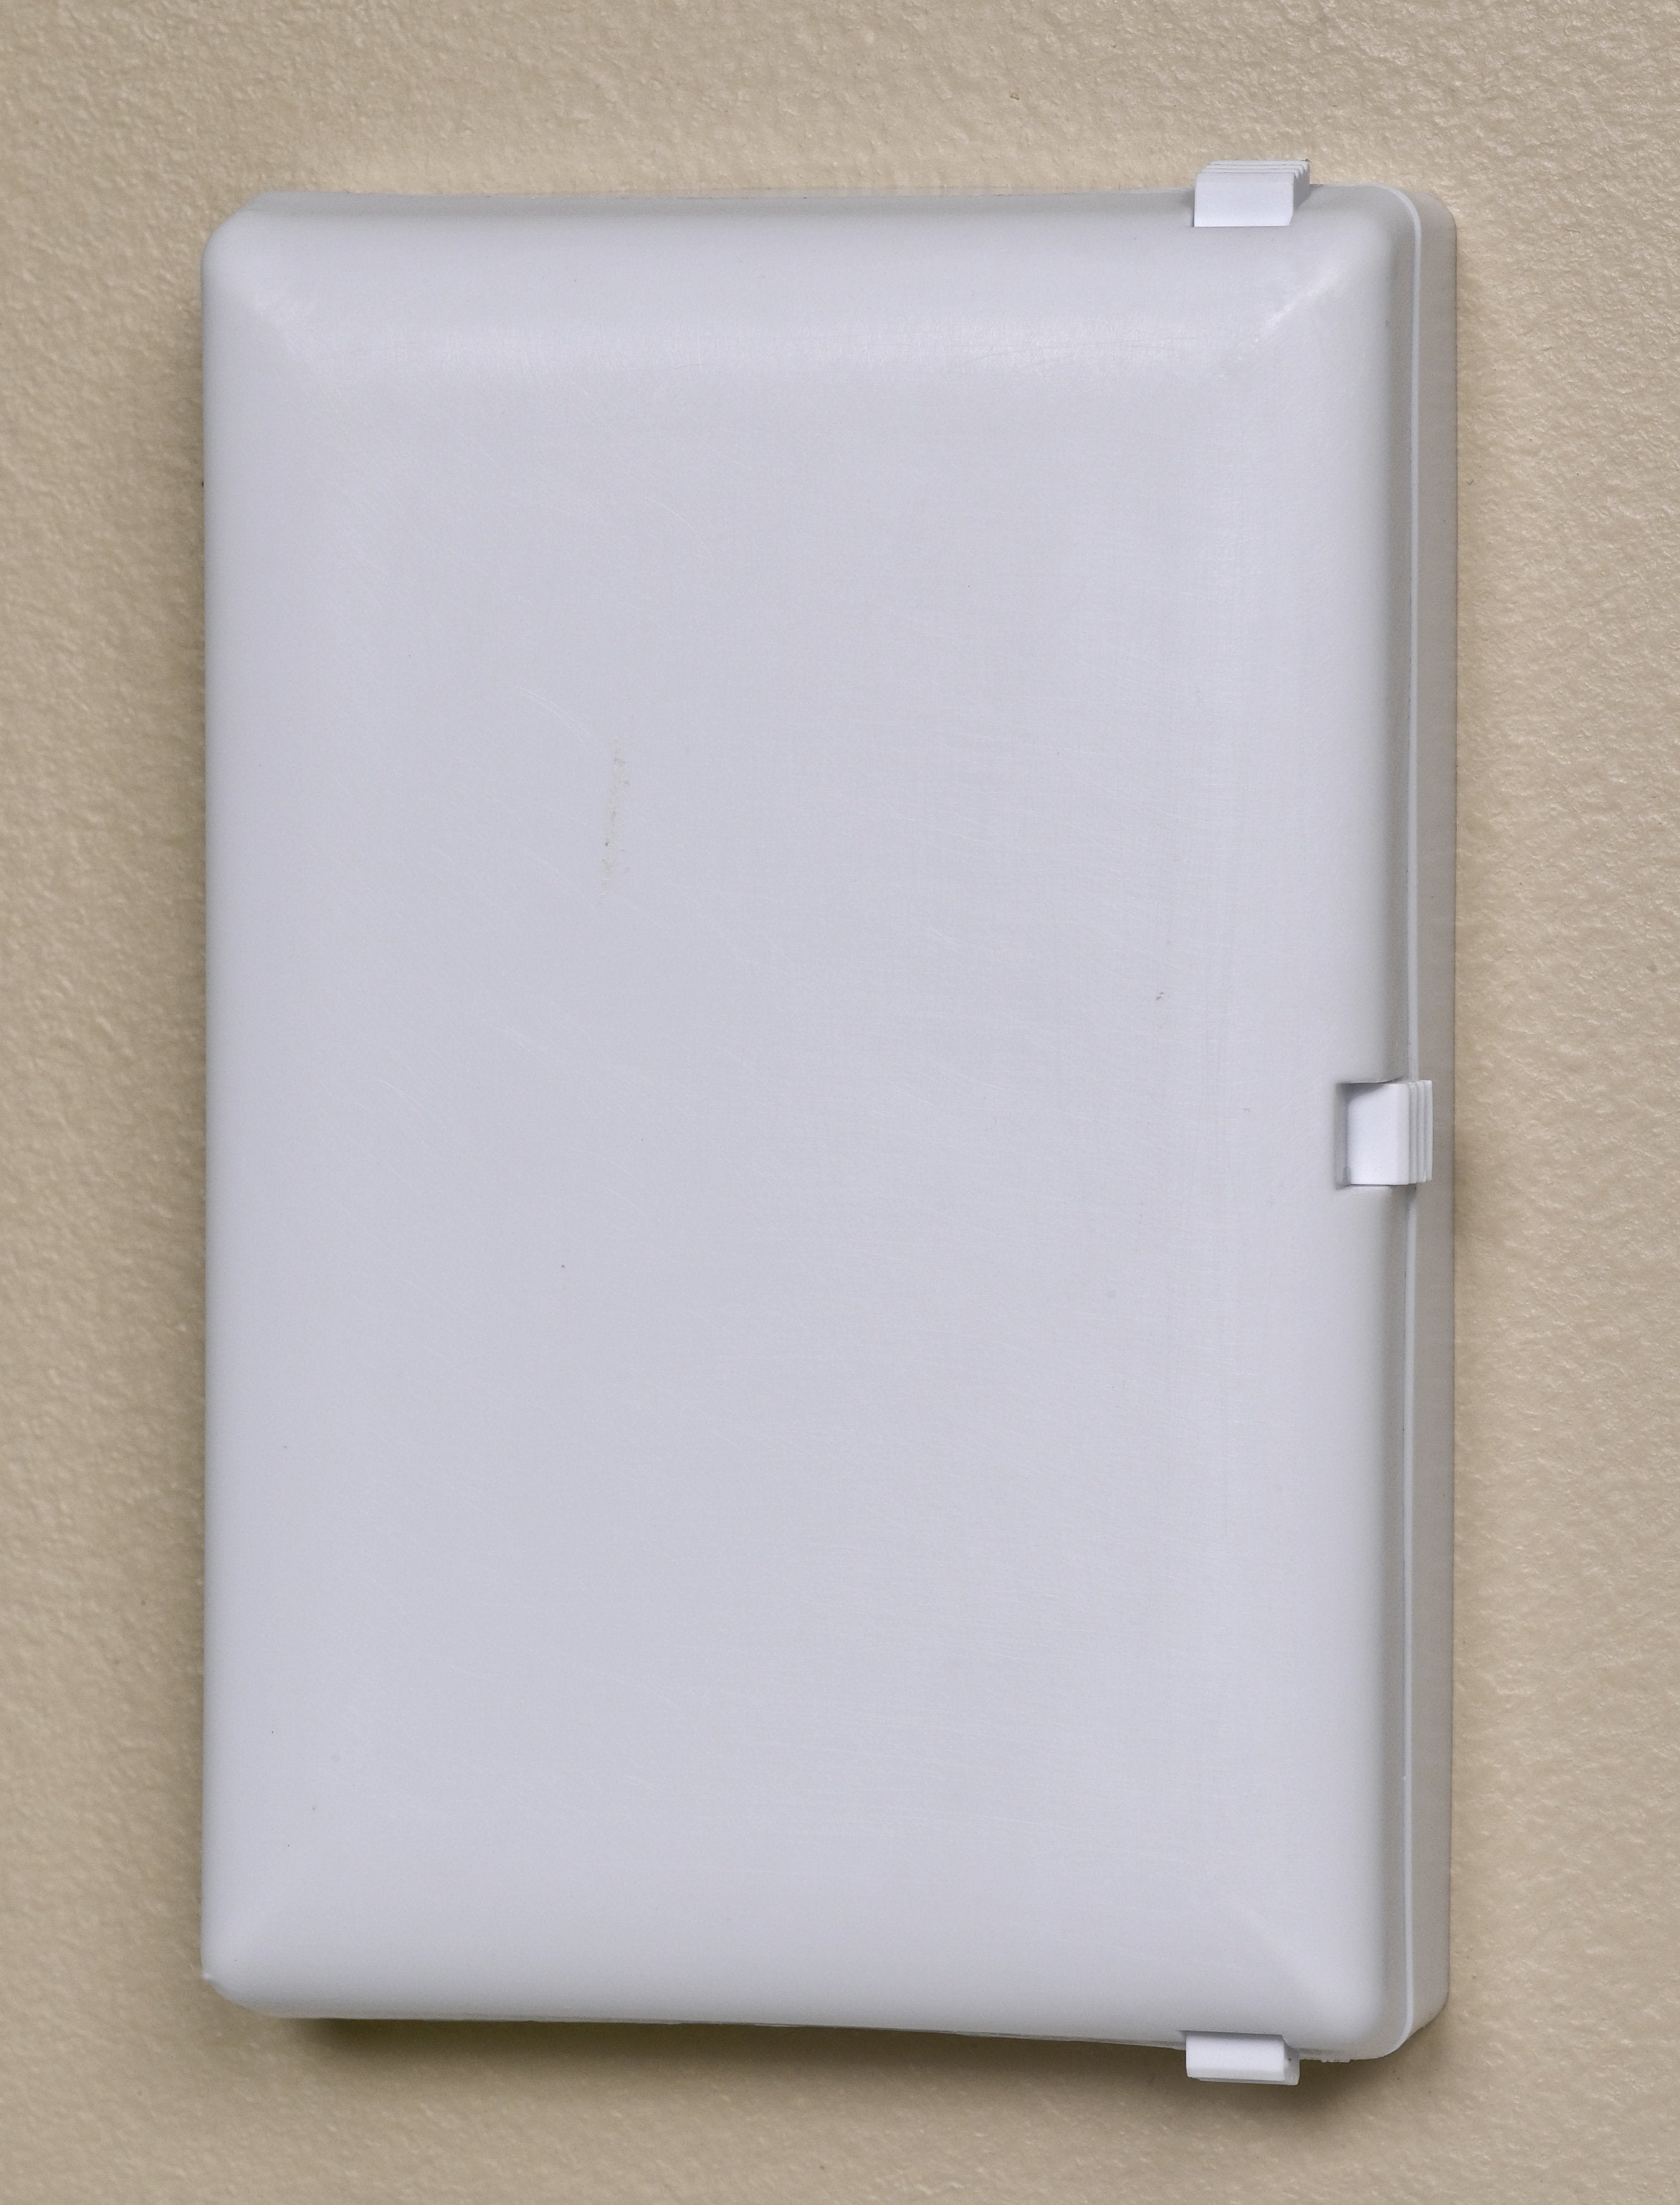 Child Be Safe Child and Pet Proof Electrical Switch Protector (Traditional Switch)